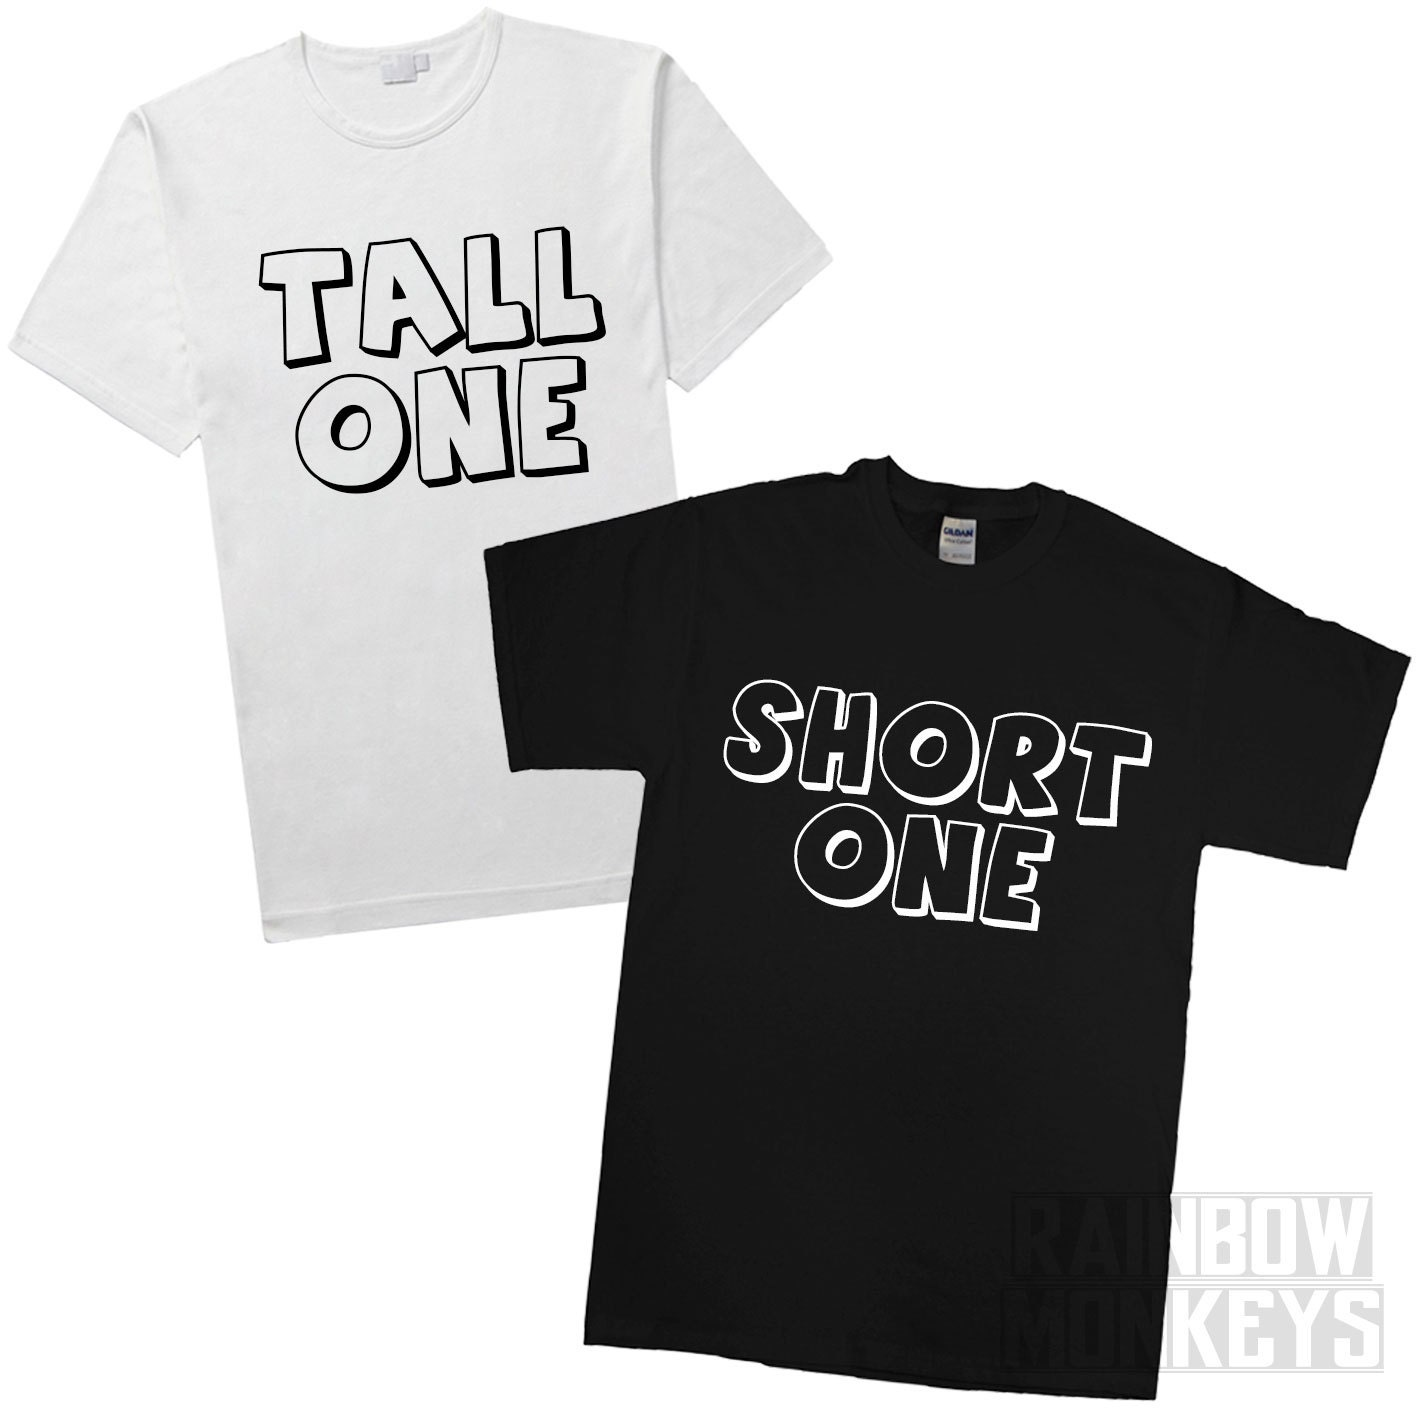 Quotes For Tall And Short Friends : Tall one and short best friends matching t shirts by